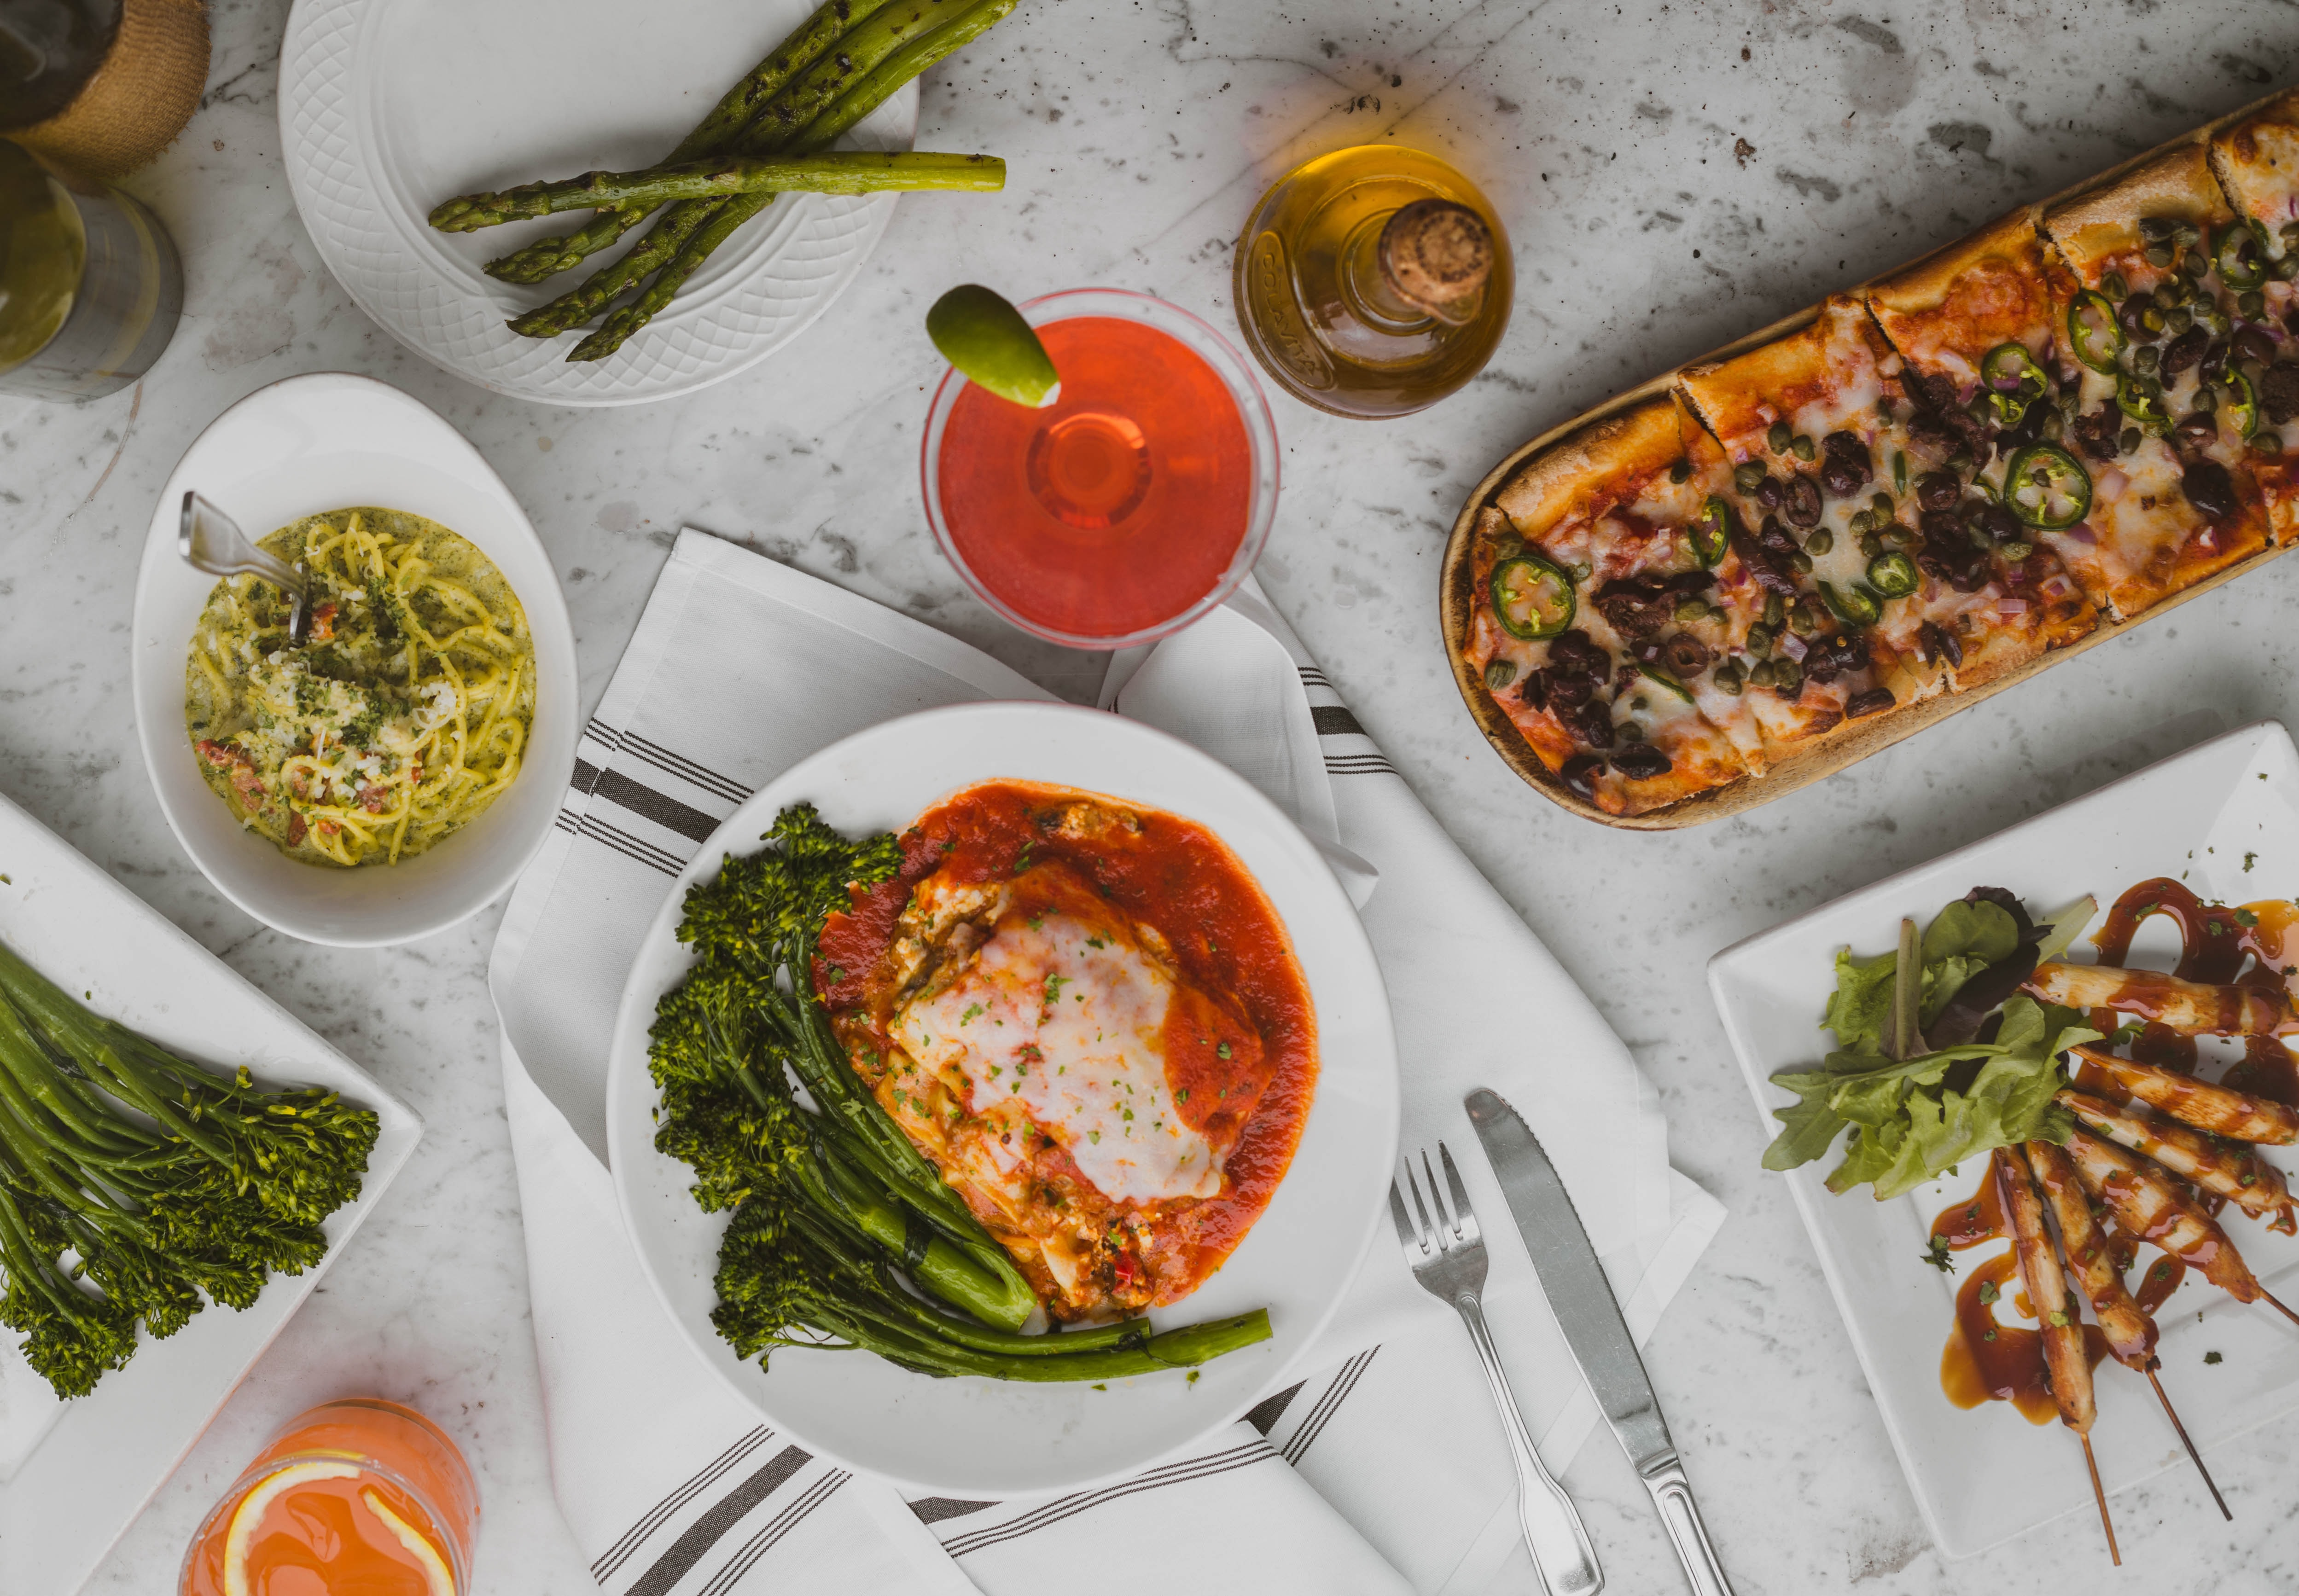 delicious italian food in bolton for students